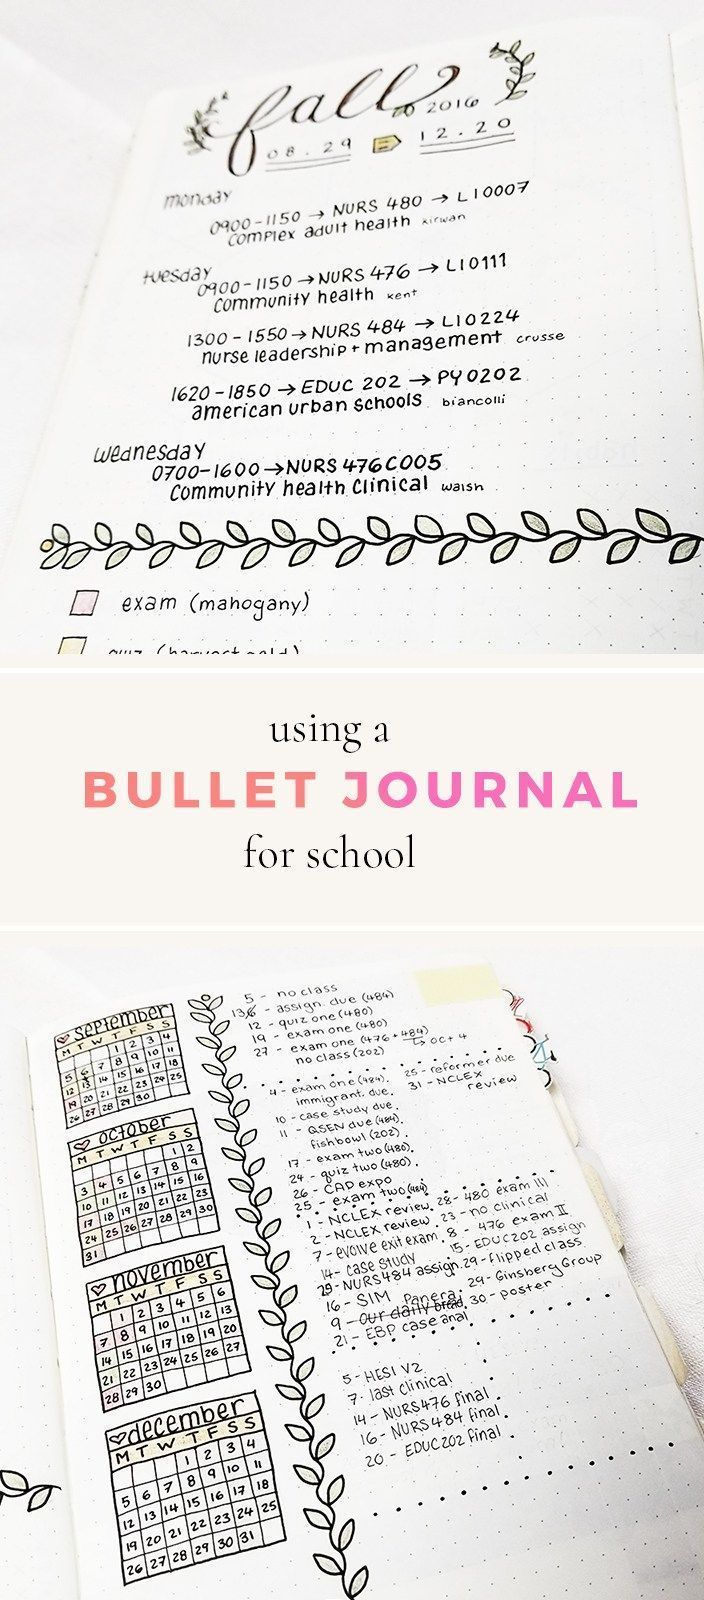 Bullet Journal for School -- setting yourself up for success with your planner or bullet journal this semester! #planner #school #bulletjournal